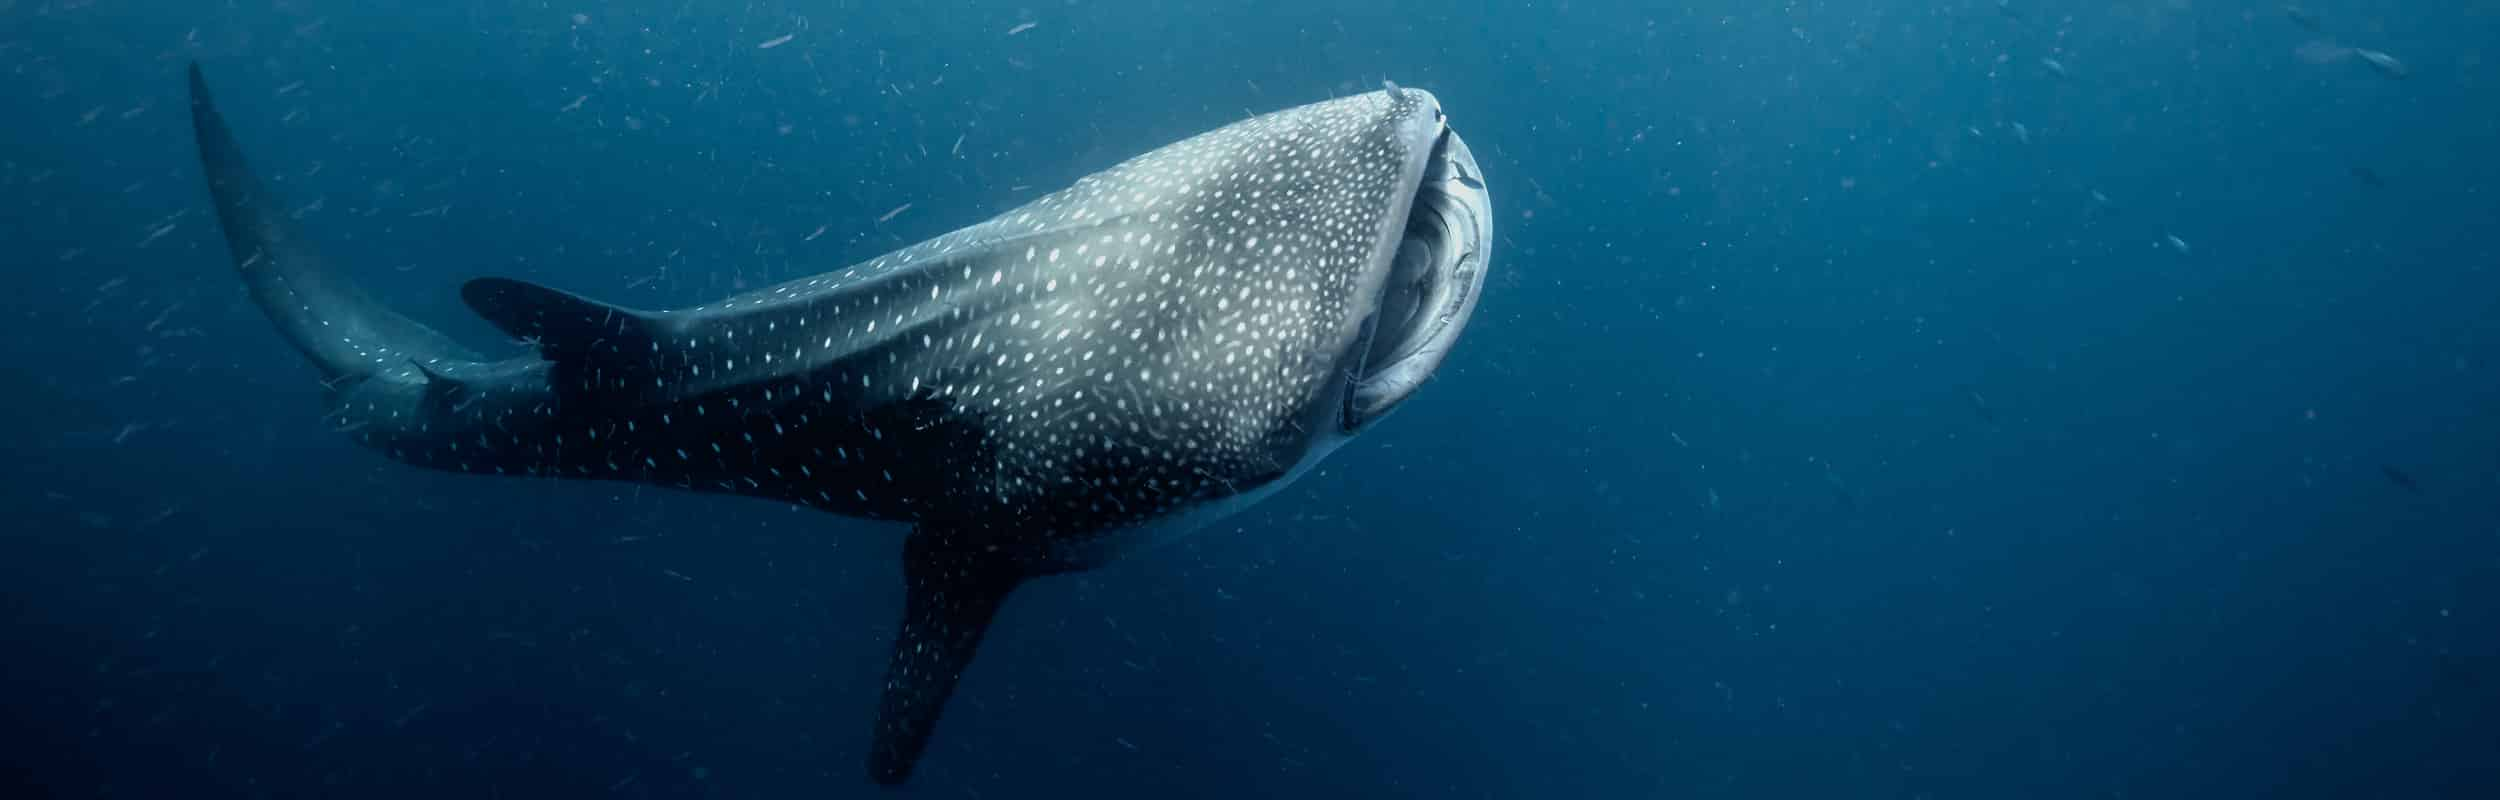 UTILA DIVE CENTRE GOECO CONSERVATION WHALESHARK SCUBA DIVING PROFESSIONAL TRAINING